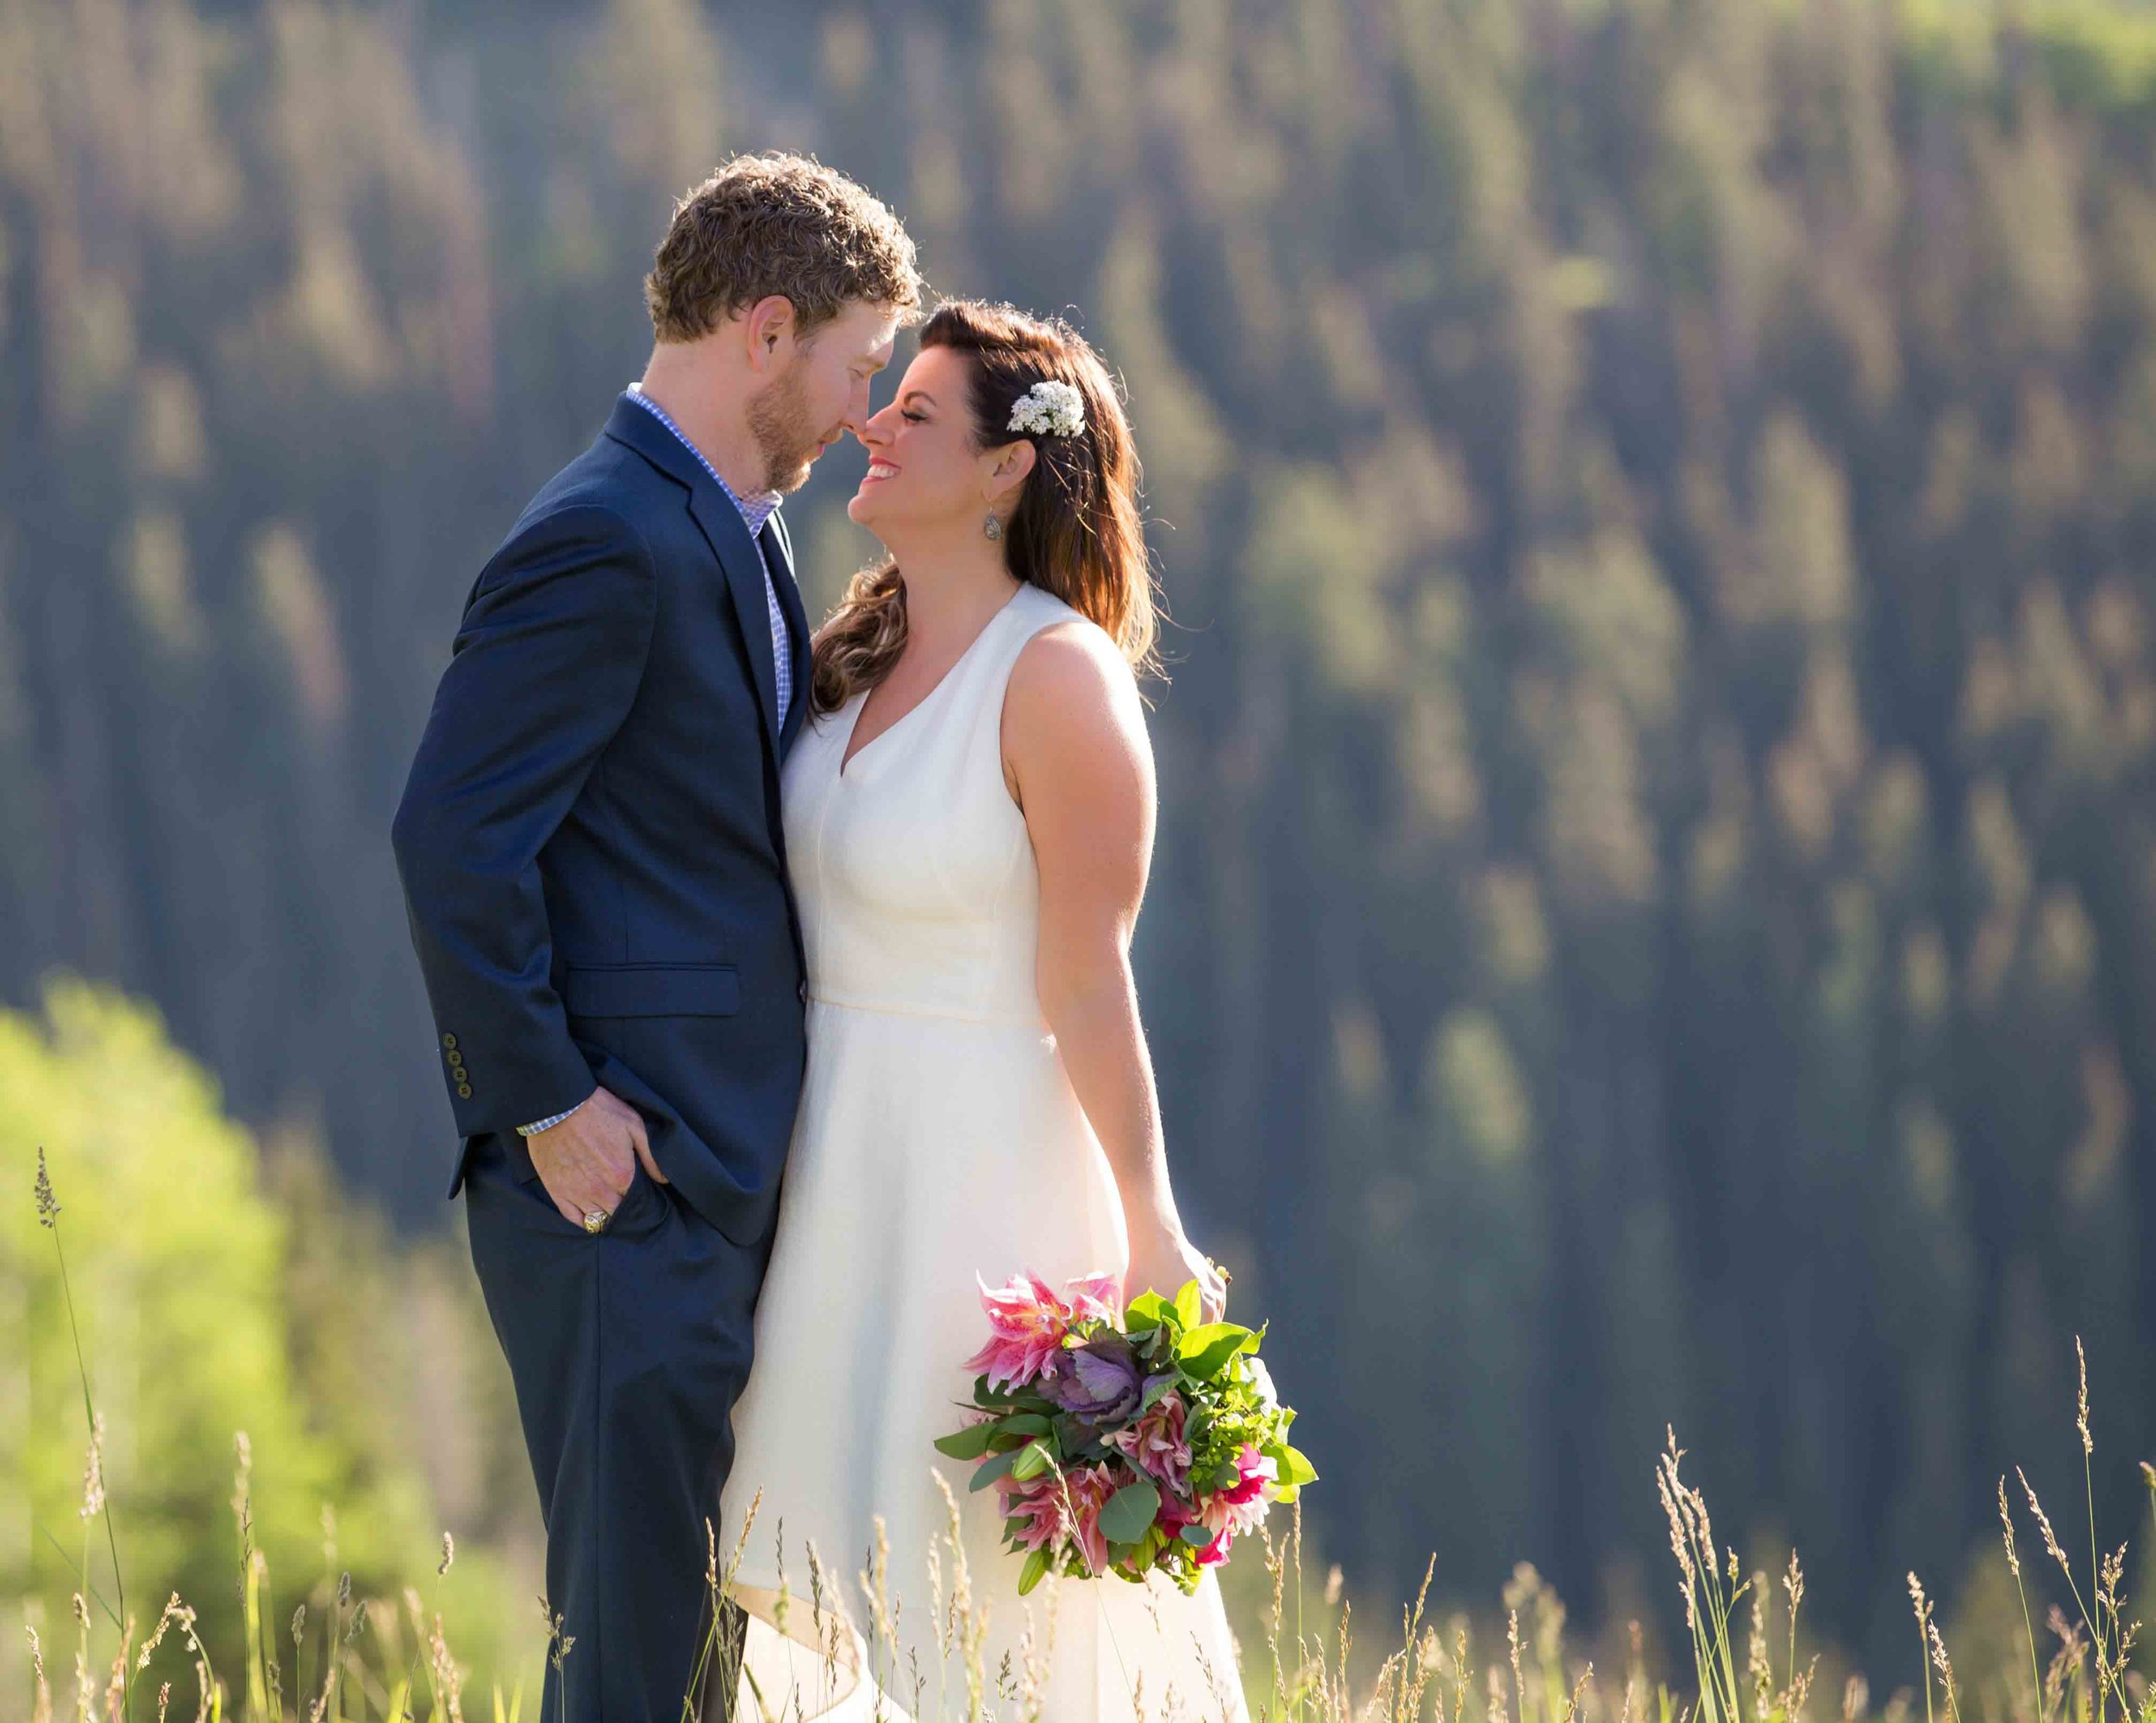 Klair & Kyle - My husband and I decided to elope while on vacation in Telluride. Lisa was wonderful to work with and made the whole process super easy. Our photos are absolutely out of this world. She was fun to work with and helped us figure out what shots we needed (we are not planners). If you are lucky enough to have her involved with your event - you will not be disappointed!